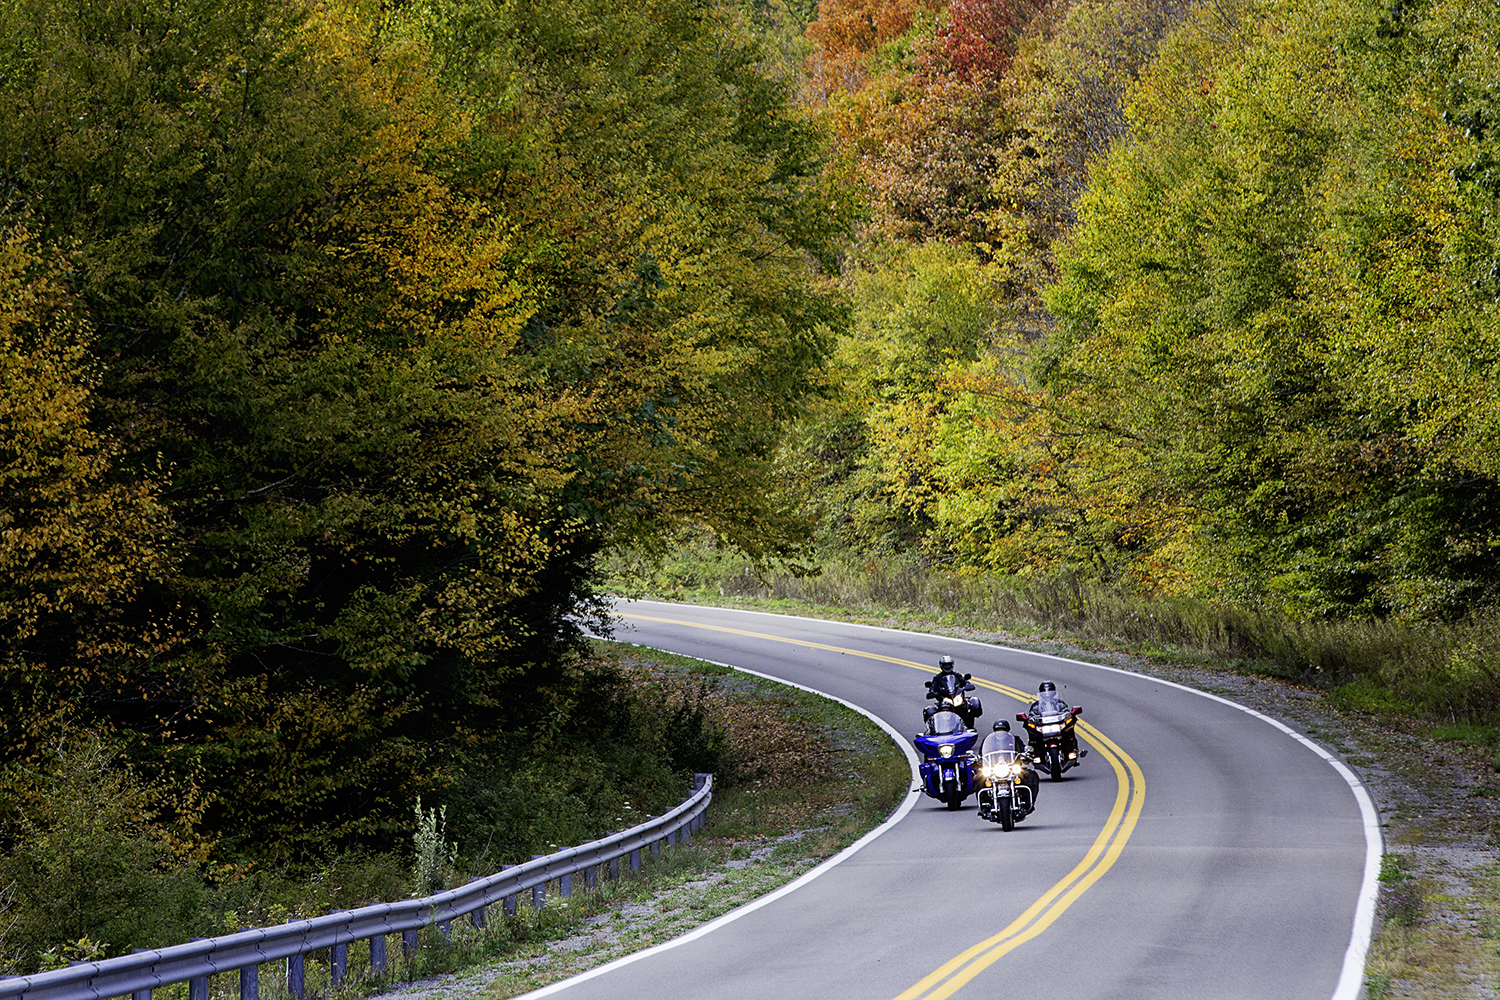 Motorcycle Itinerary West Virginia : Visit Southern West ... on map of md, map of raleigh county west virginia, map of ohio, map of tx, map of pennsylvania, map of wi, map projection, map of virginia with cities, map of ky, map of west virginia cities, map of west virginia only, map of wy, map of tennessee, map of west virginia and virginia together, map of ct, map of nc, map of wvu, map of west virginia mountains, map of elkins west virginia, map of va,